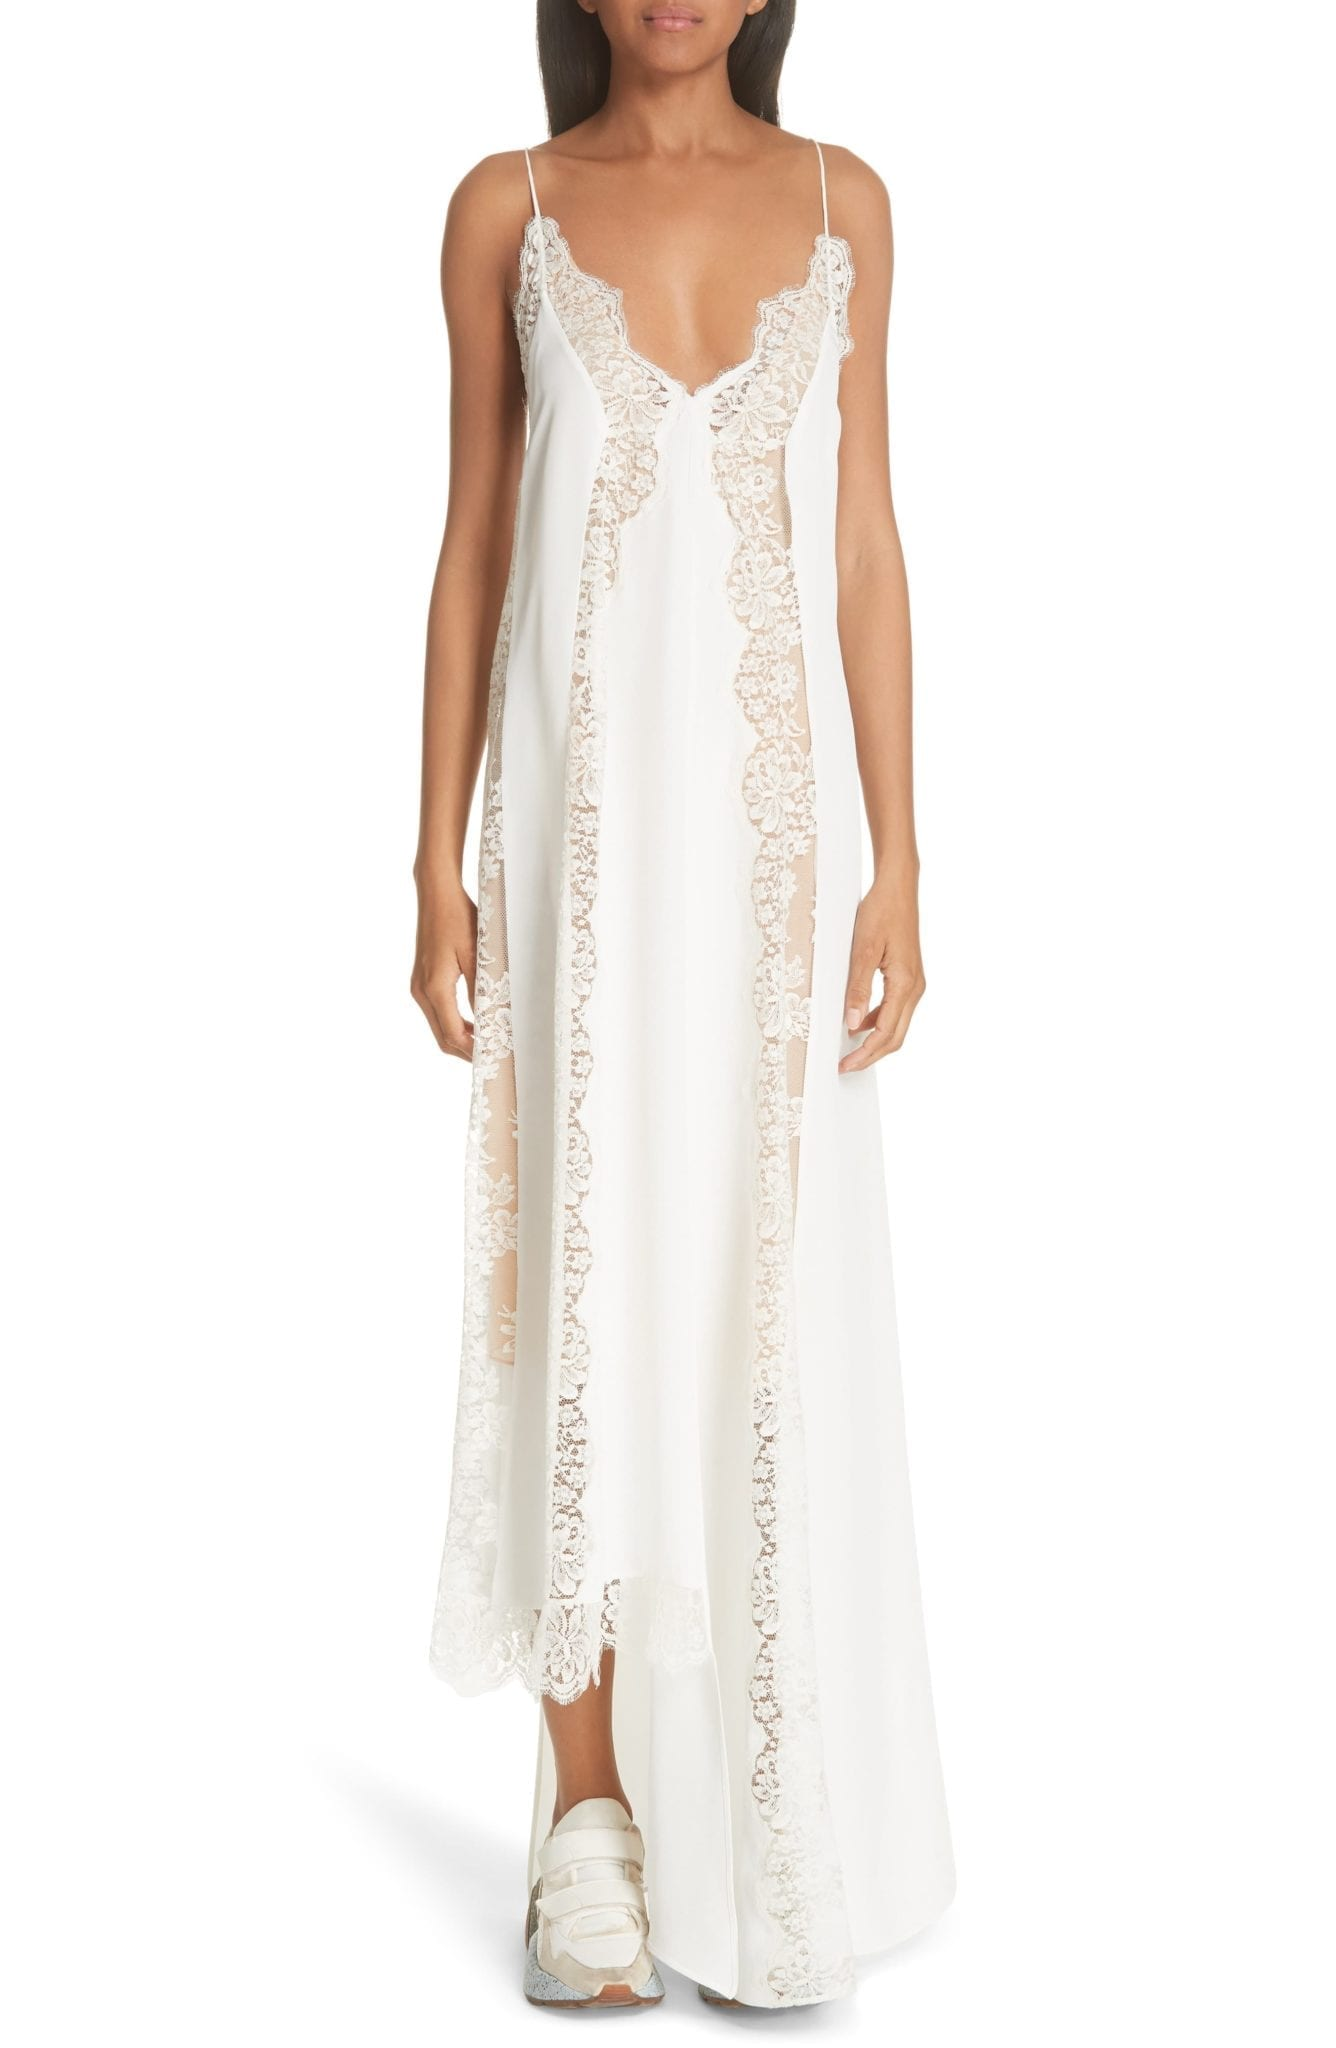 f5ab0e2f38a34 STELLA MCCARTNEY Lace Panel Asymmetrical Silk Ivory Dress